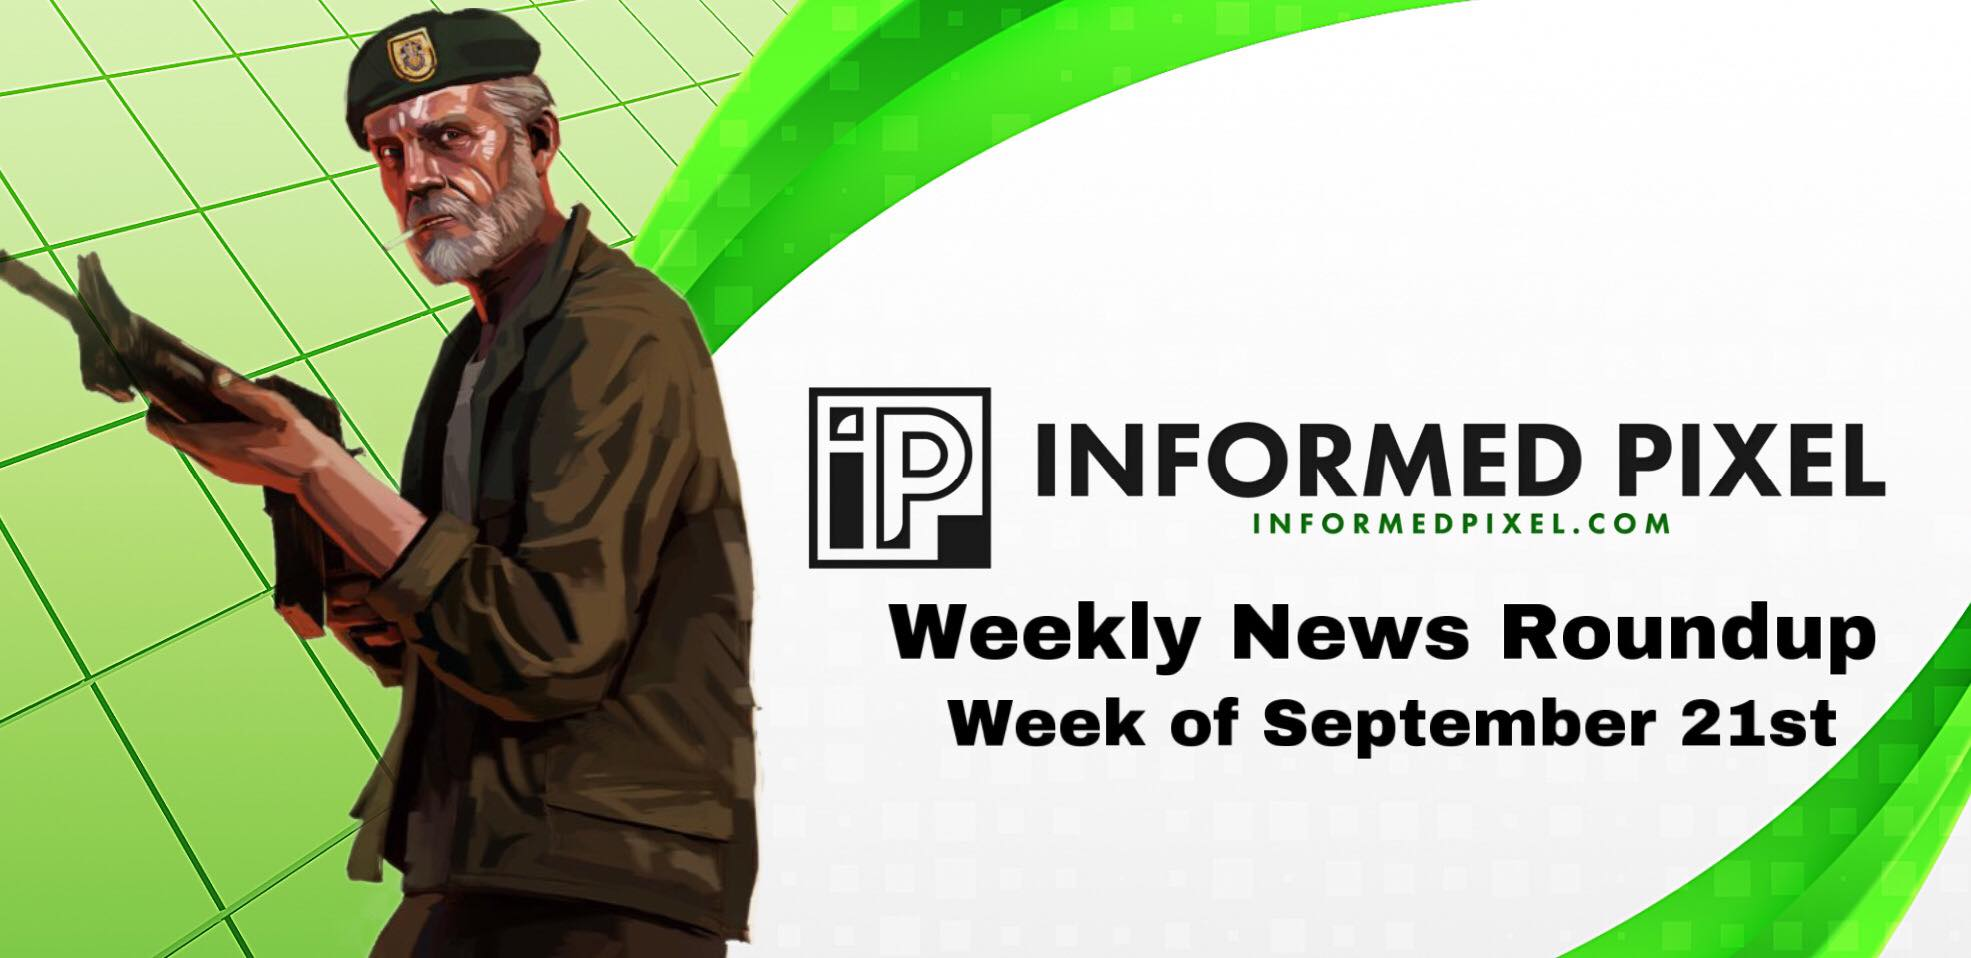 Weekly News Roundup – Week of September 21st